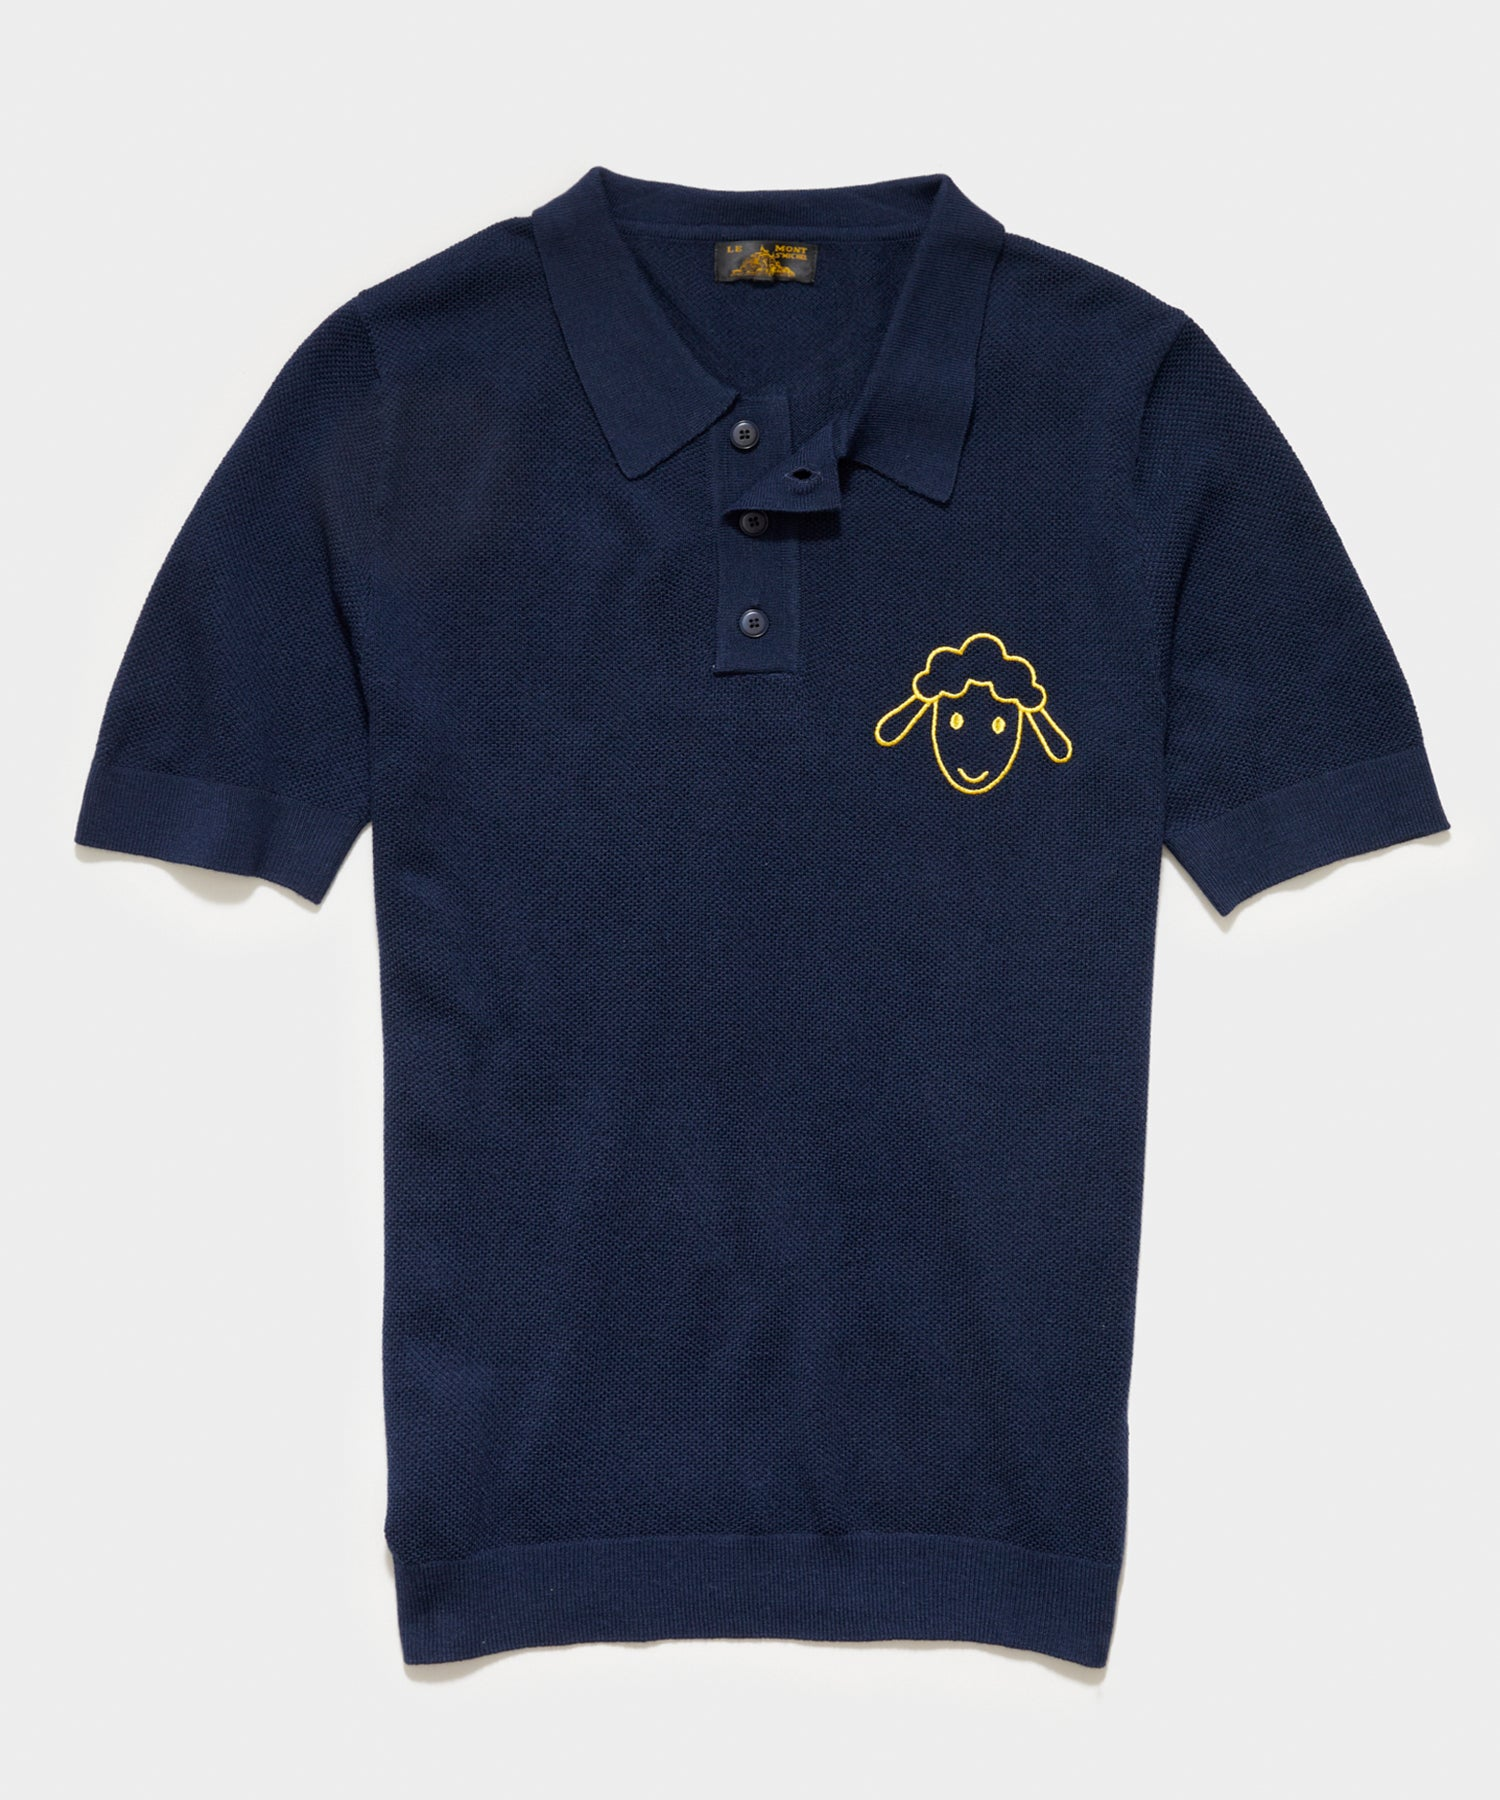 Le Mont St Michel Piqué Lambs Embroidery Sweater Polo in Navy